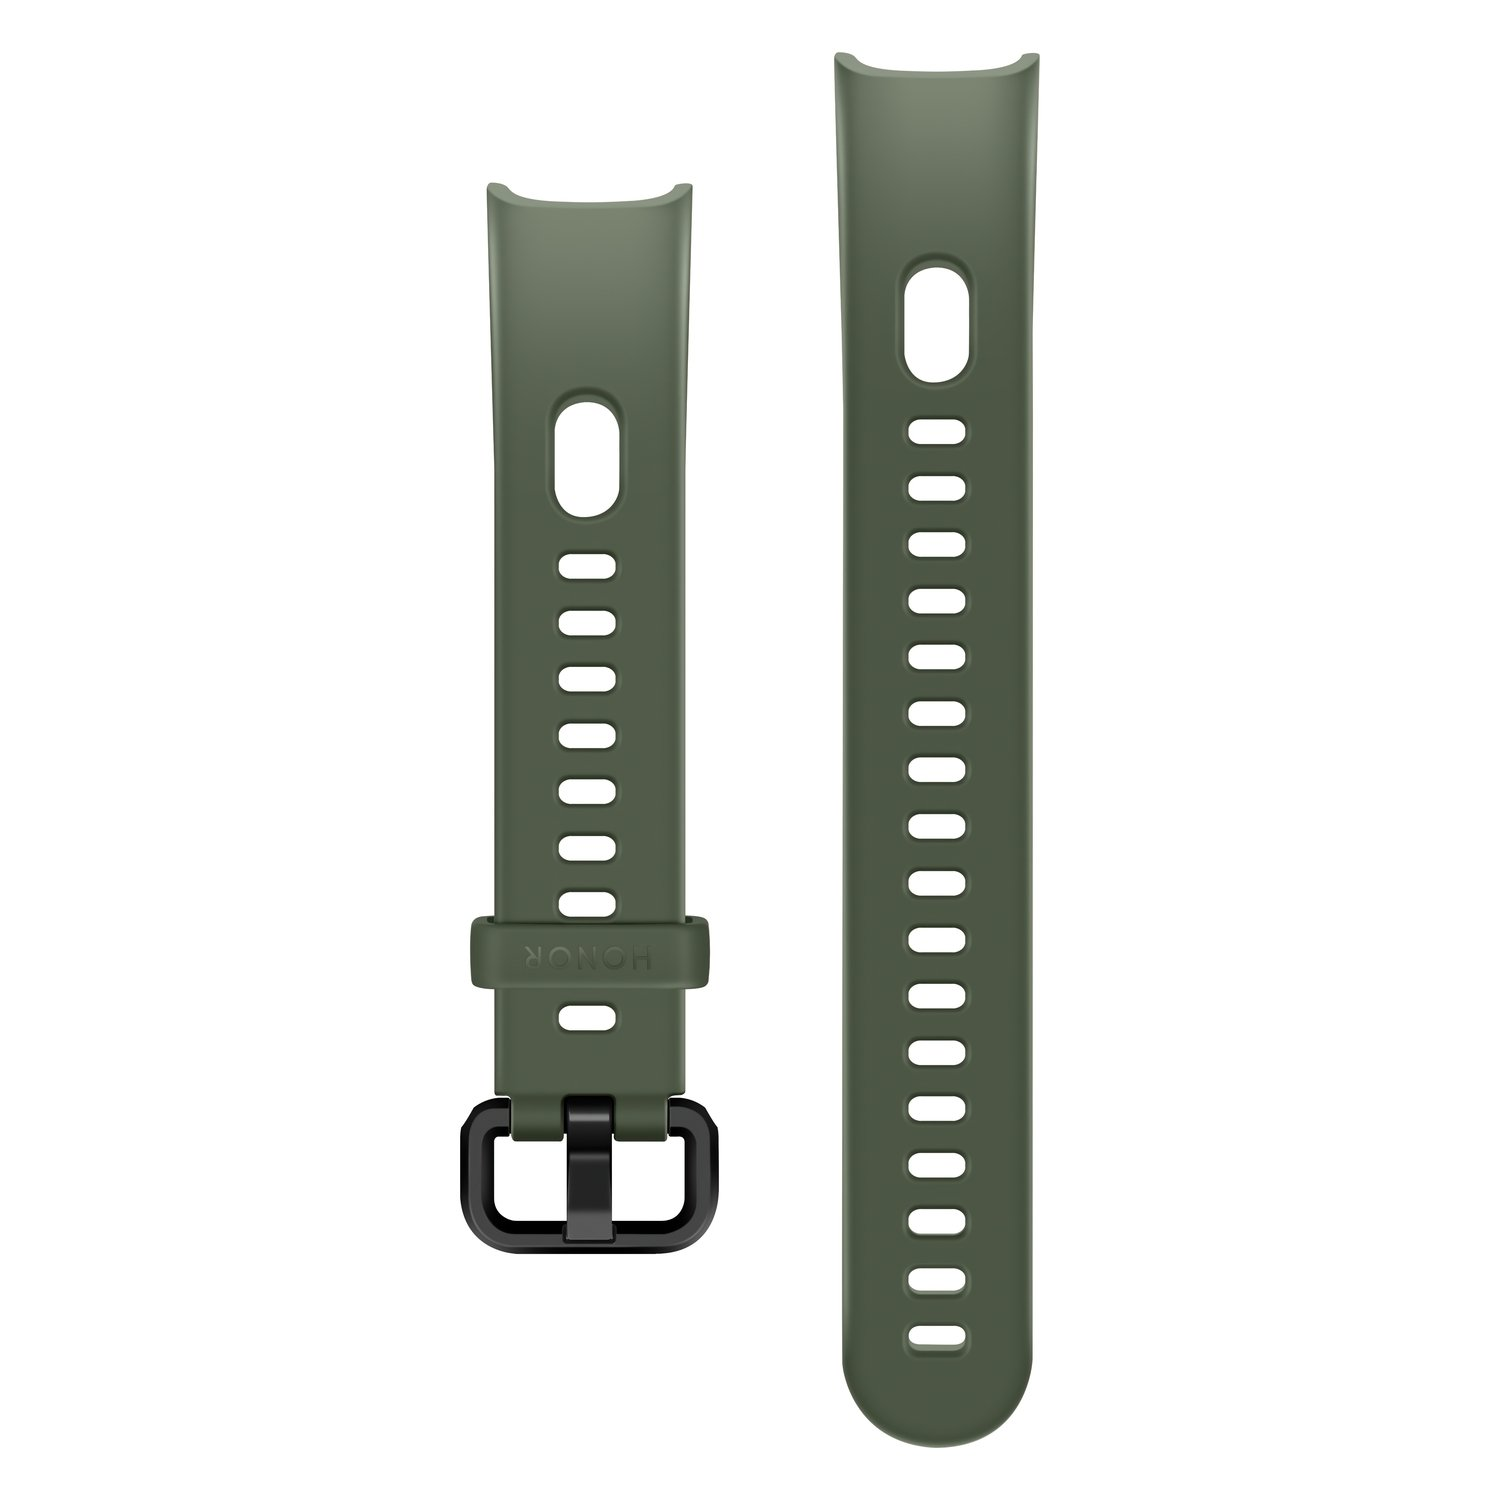 Фитнес-браслет Honor Band 5i (ADS-B19) Olive Green фото 6